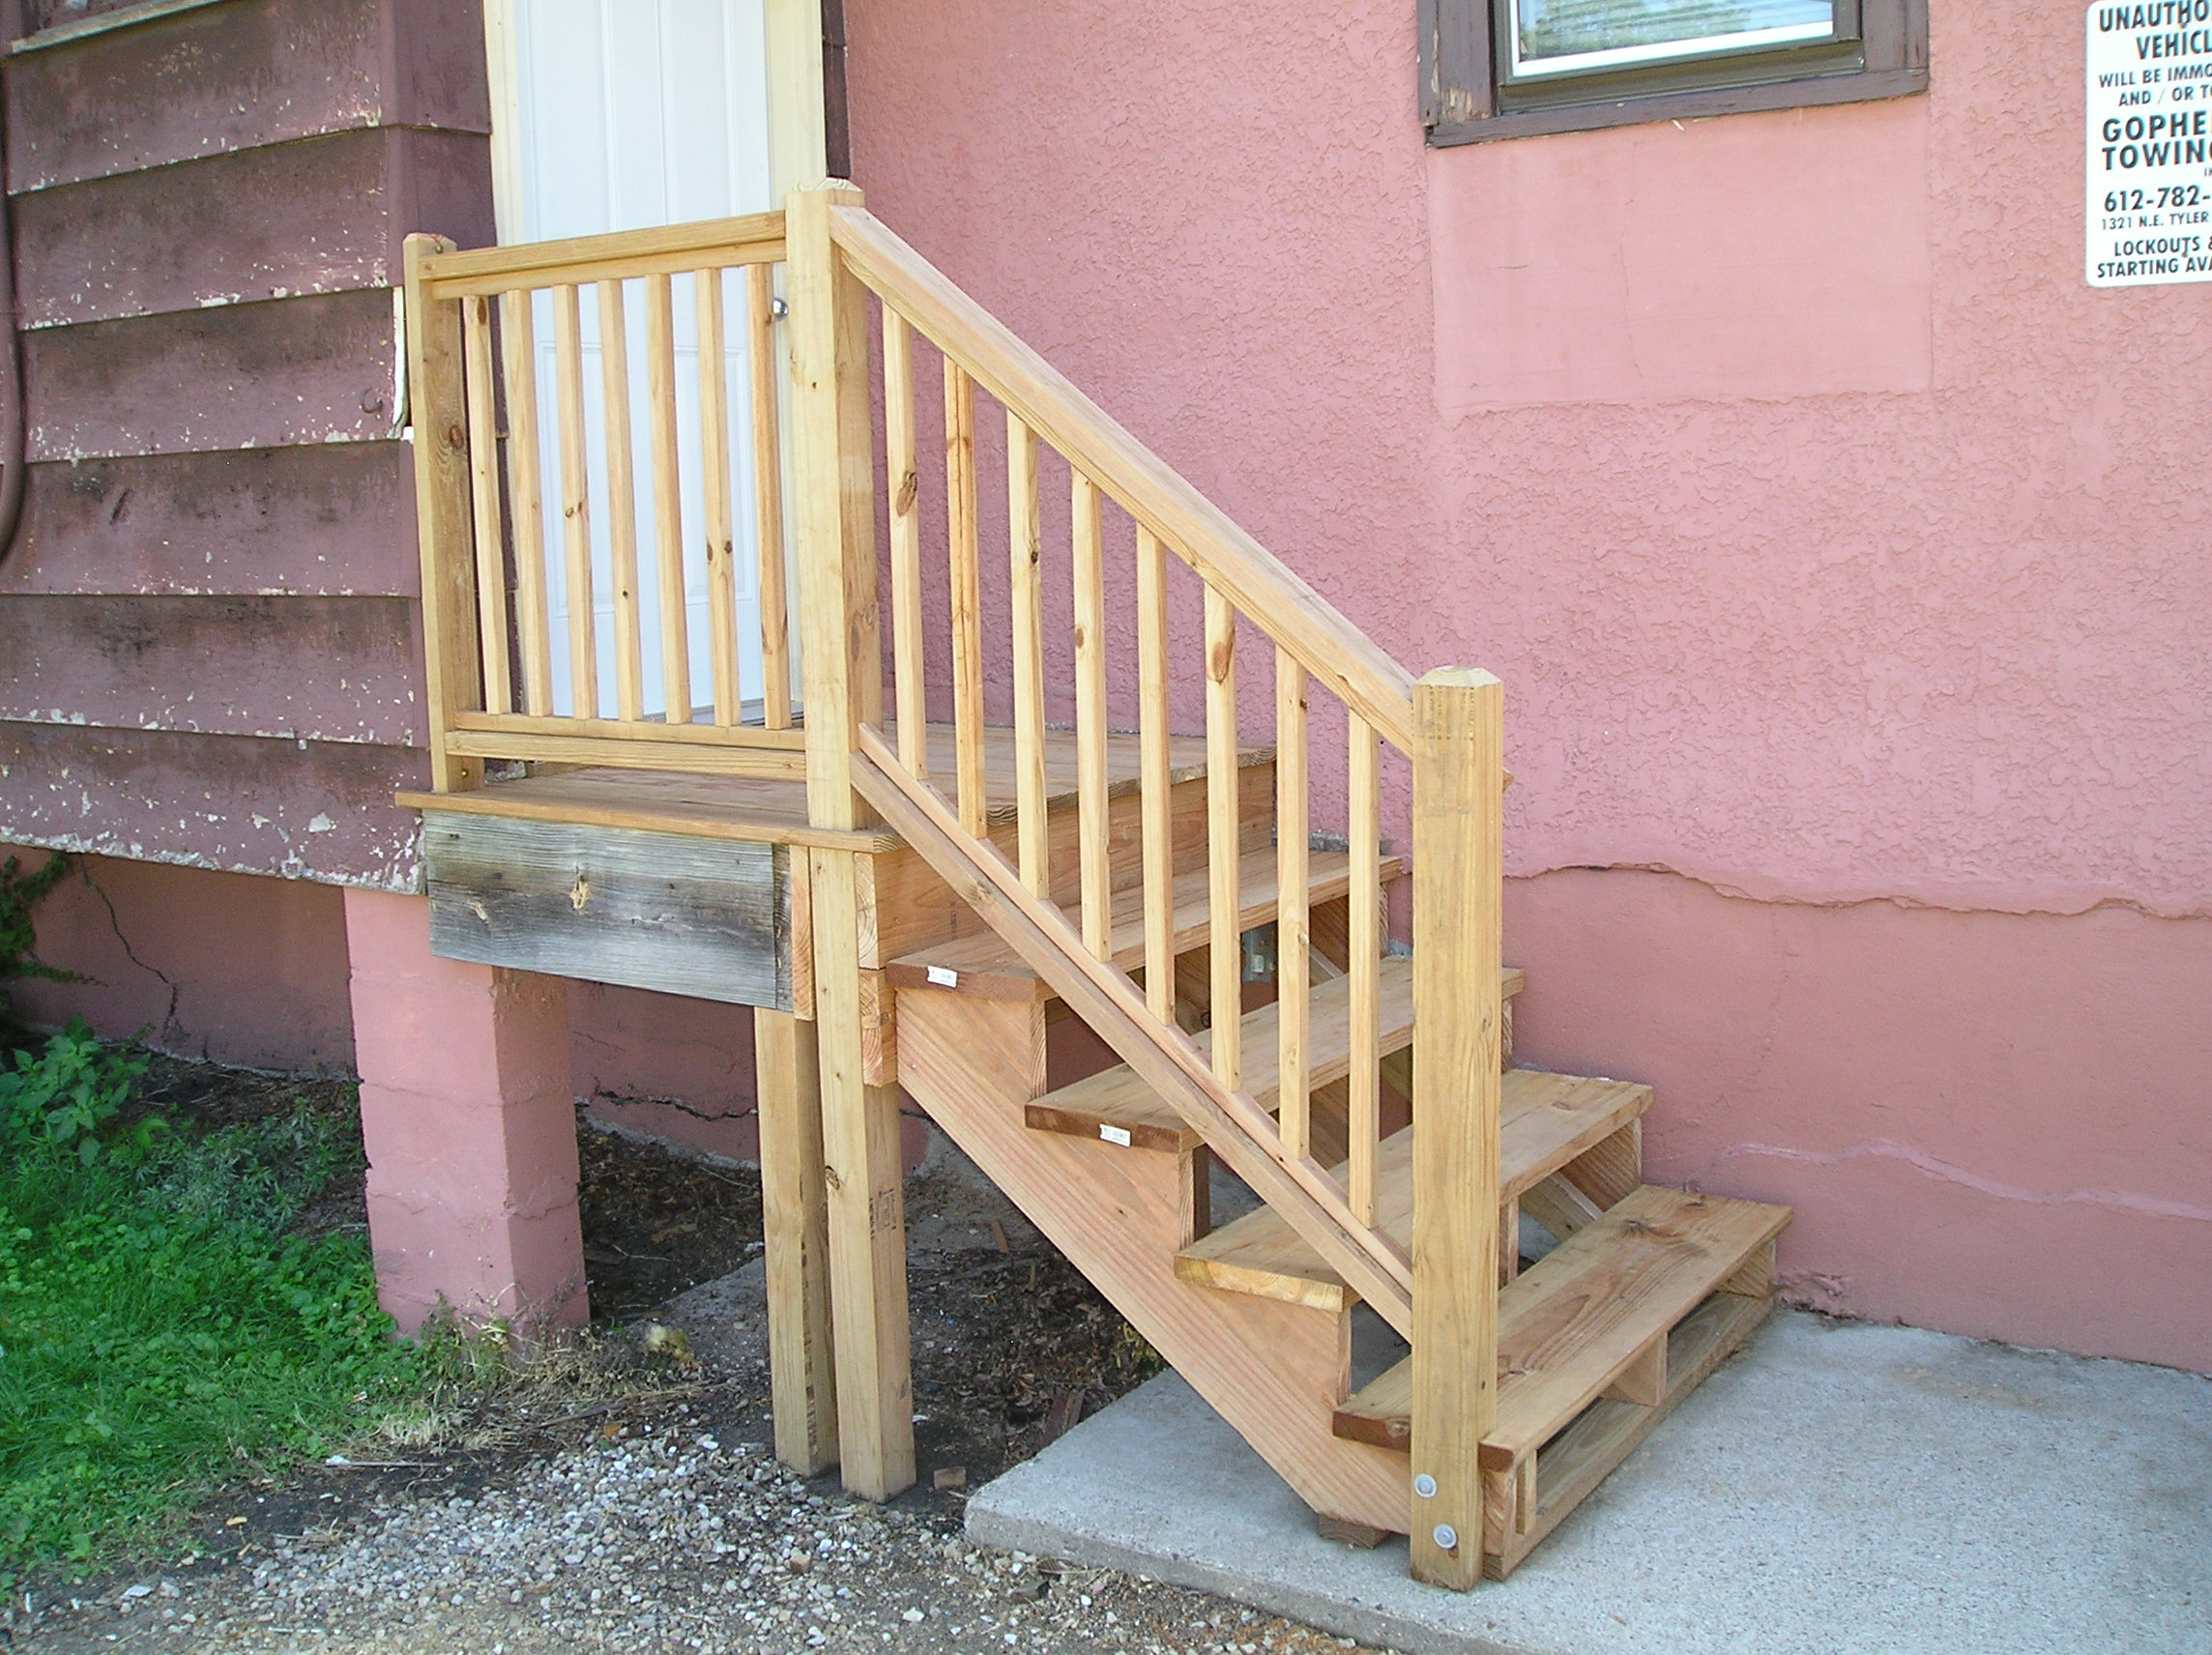 Newel Post Attachment And Notching Same